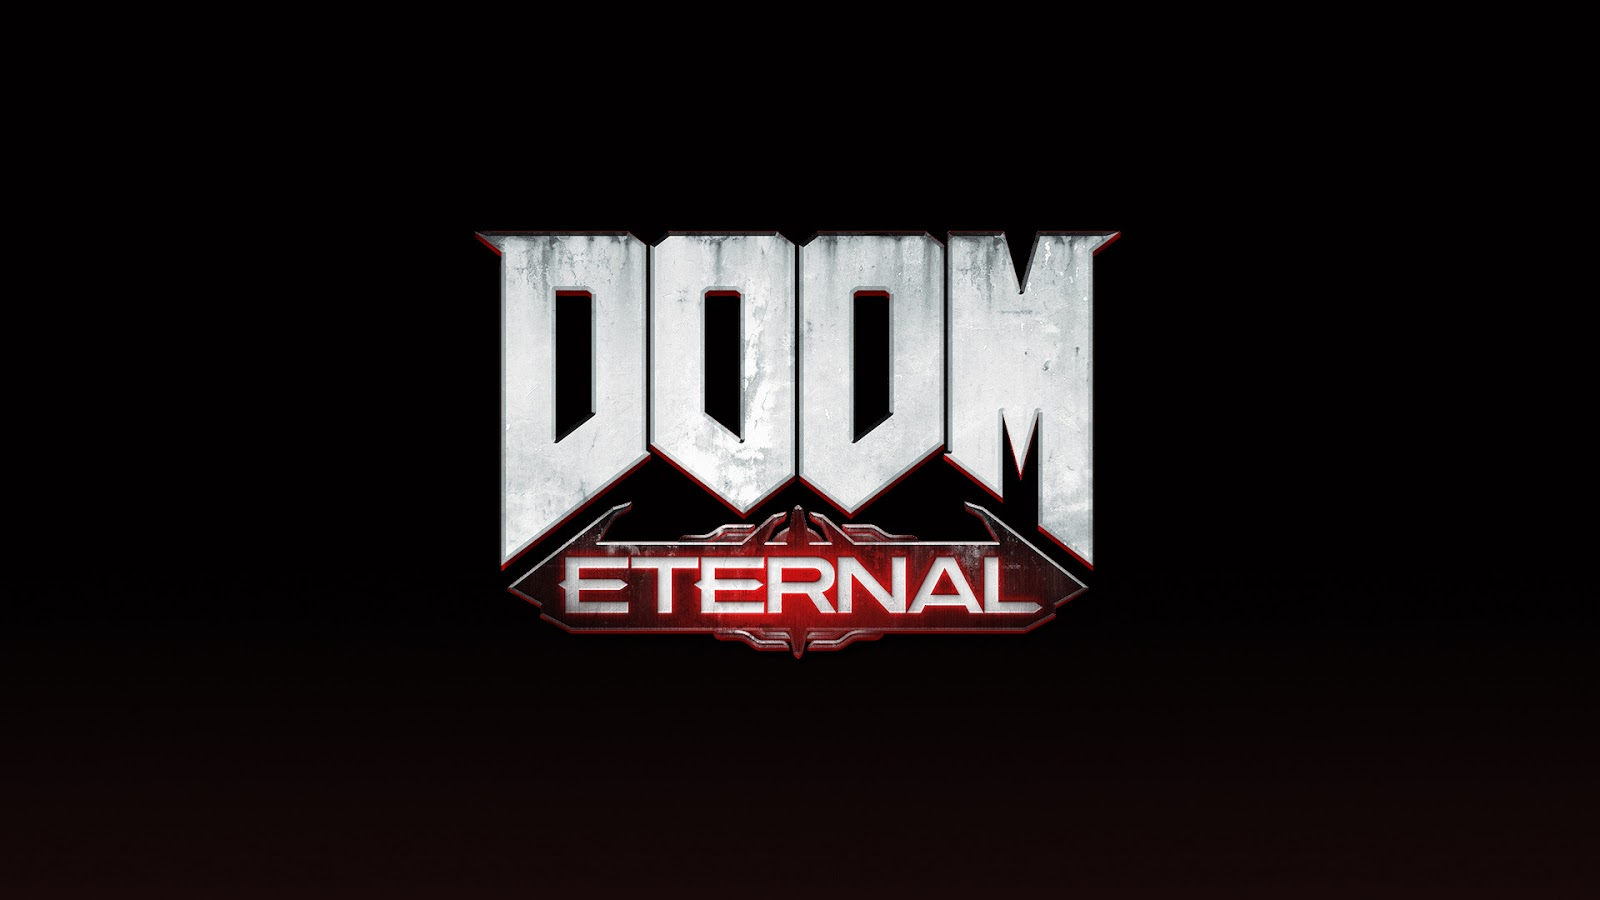 DOOM Eternal, game, free wallpaper hd